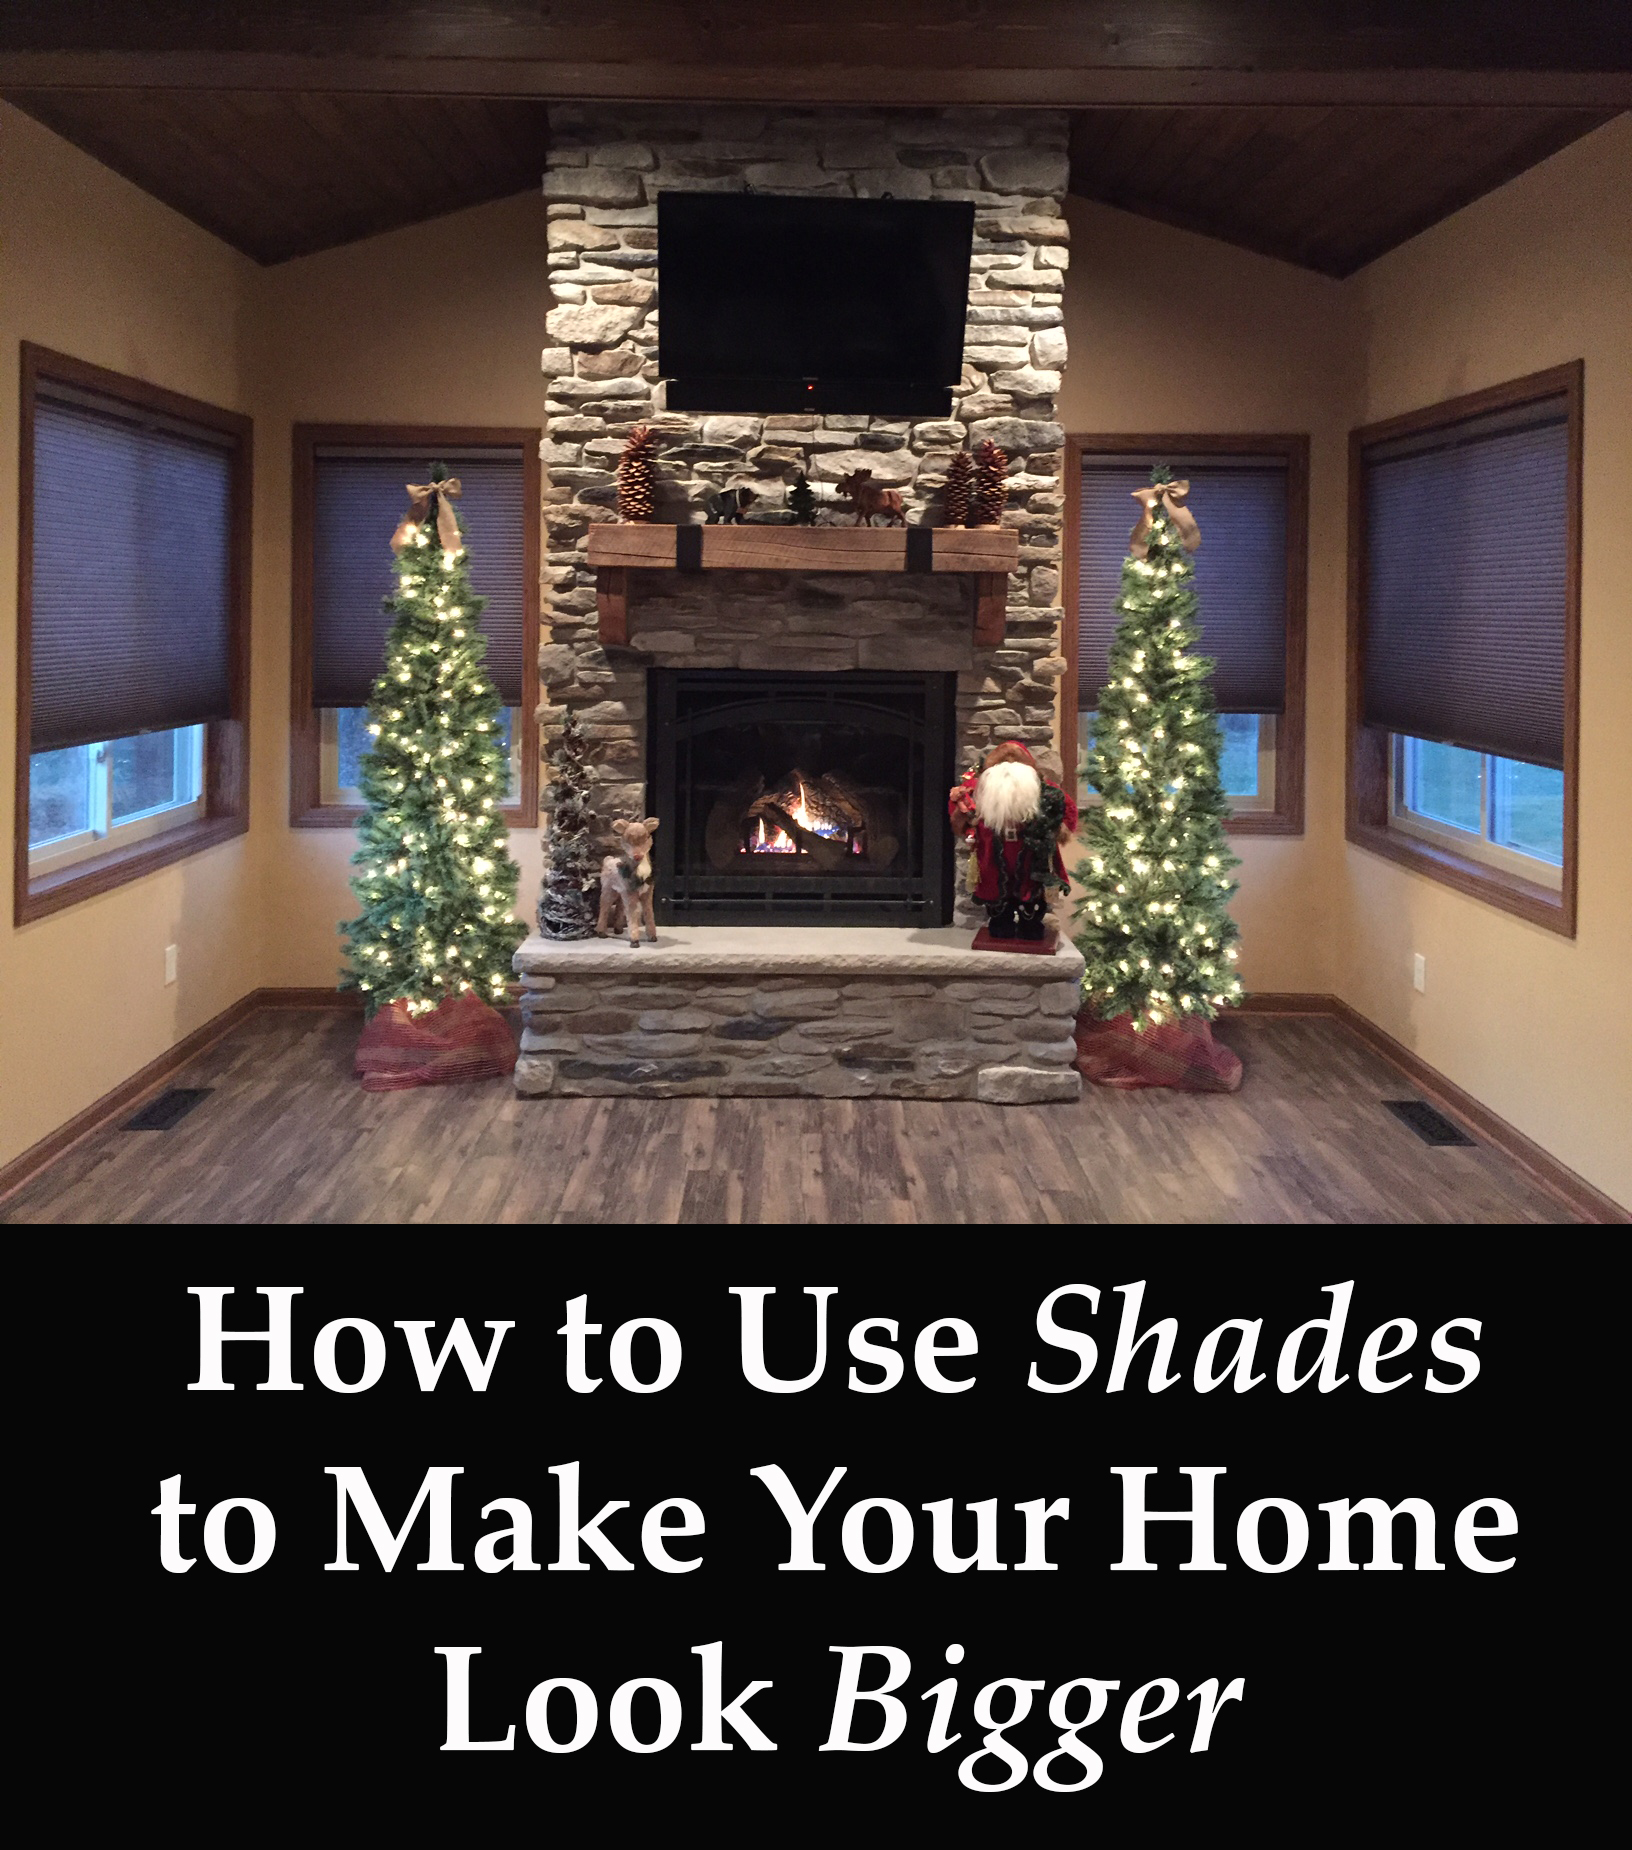 How to Use Shades to Make Your Home Look Bigger